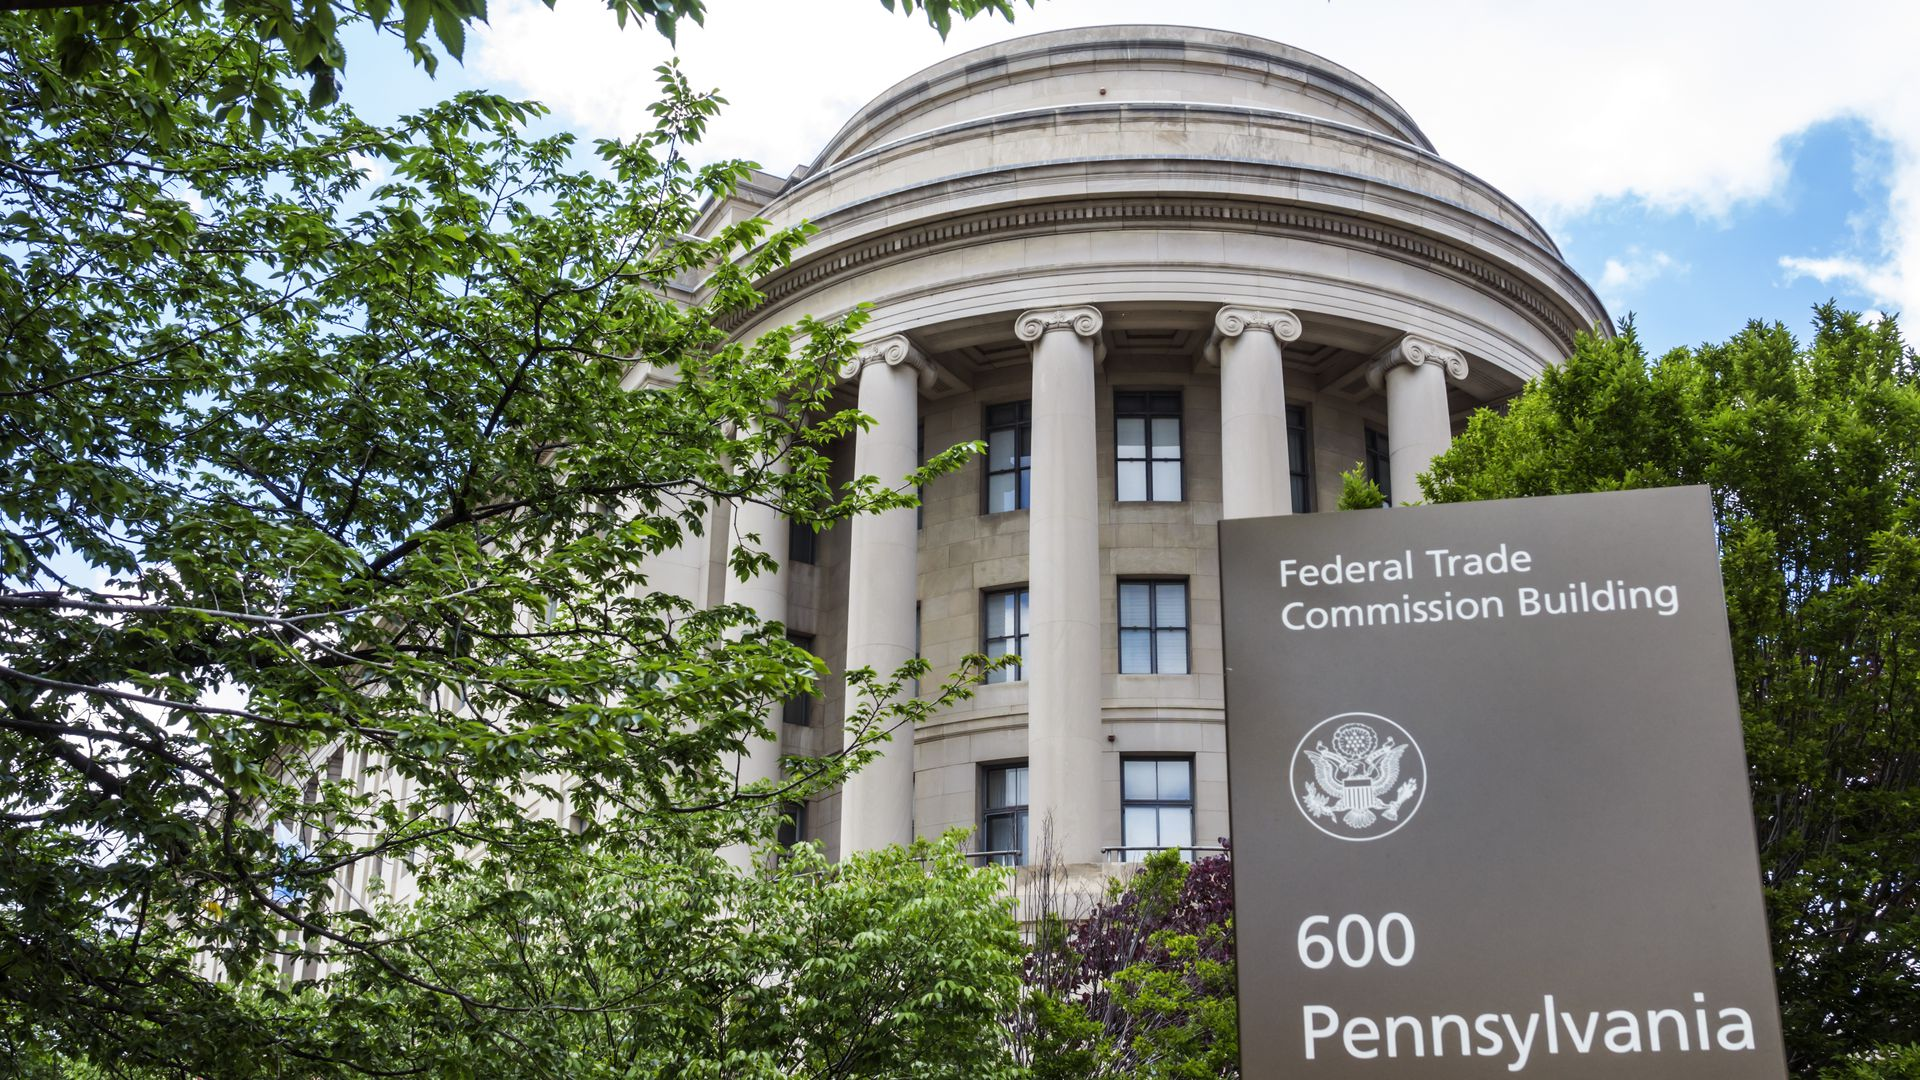 A photo of the Federal Trade Commission building with a sign out front